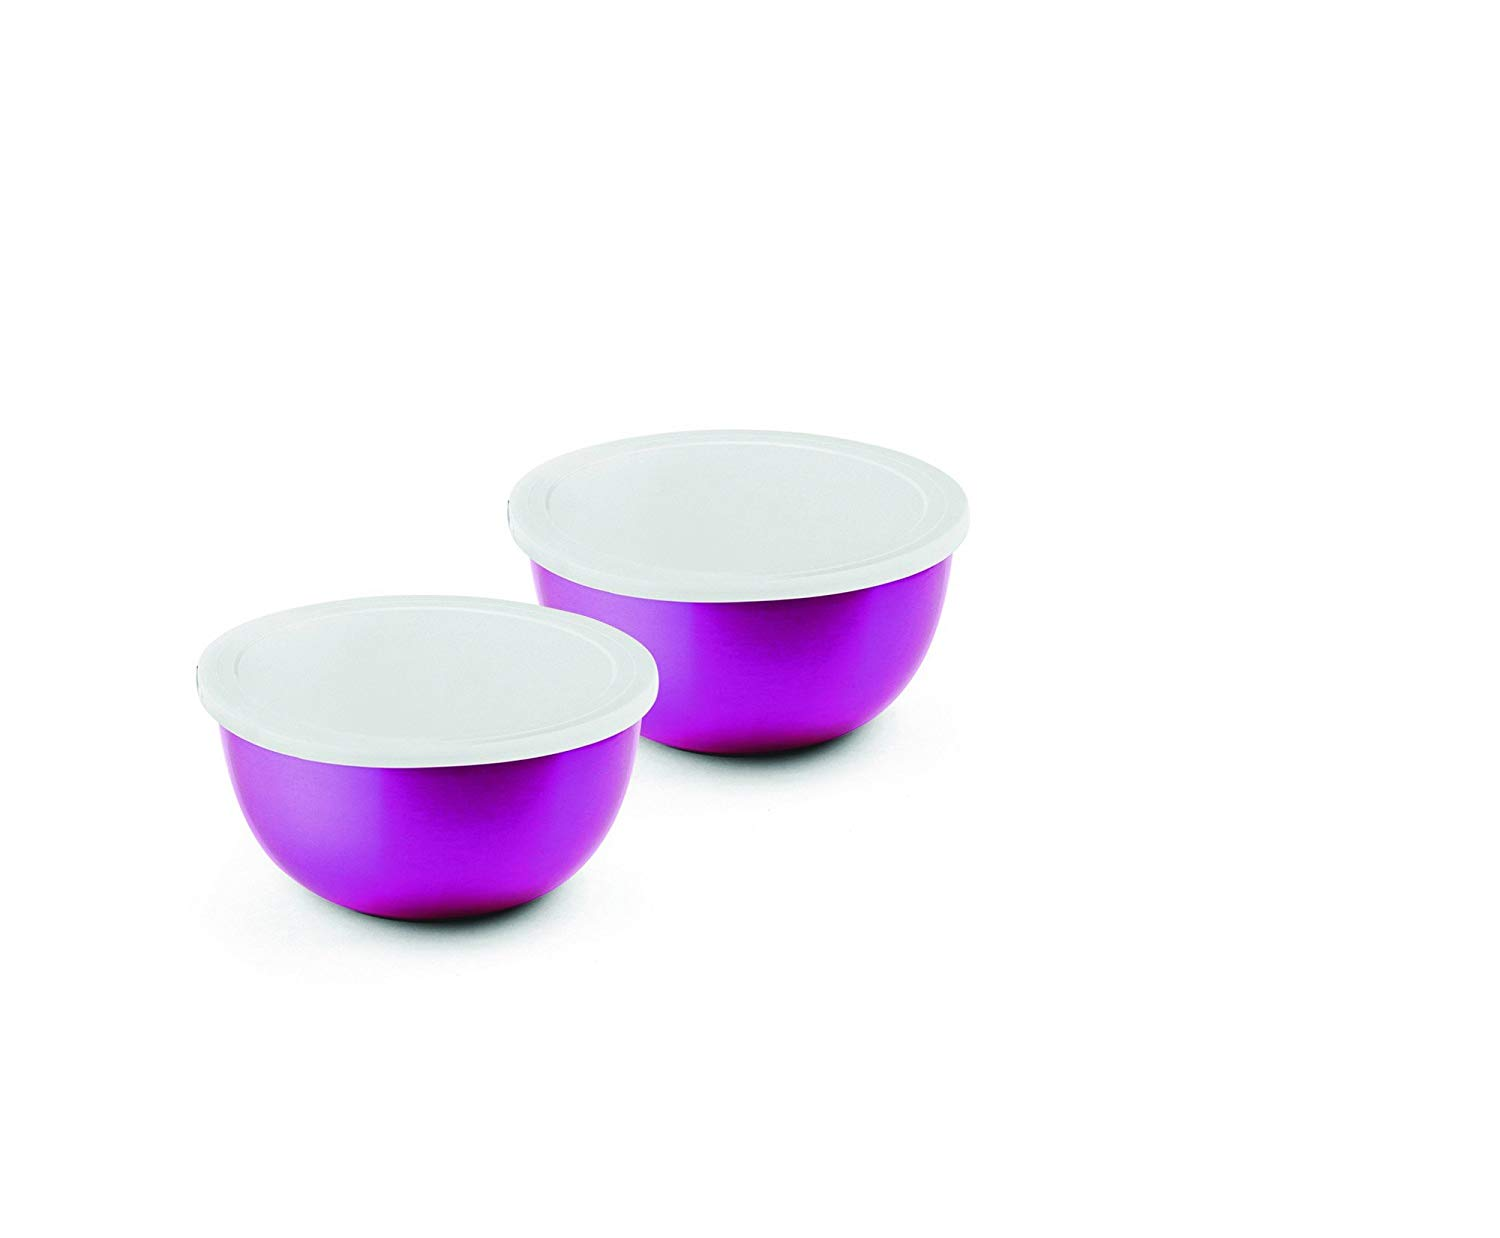 Microwave Safe Bowls Cheap Microwave Safe Mixing Bowls Find Microwave Safe Mixing